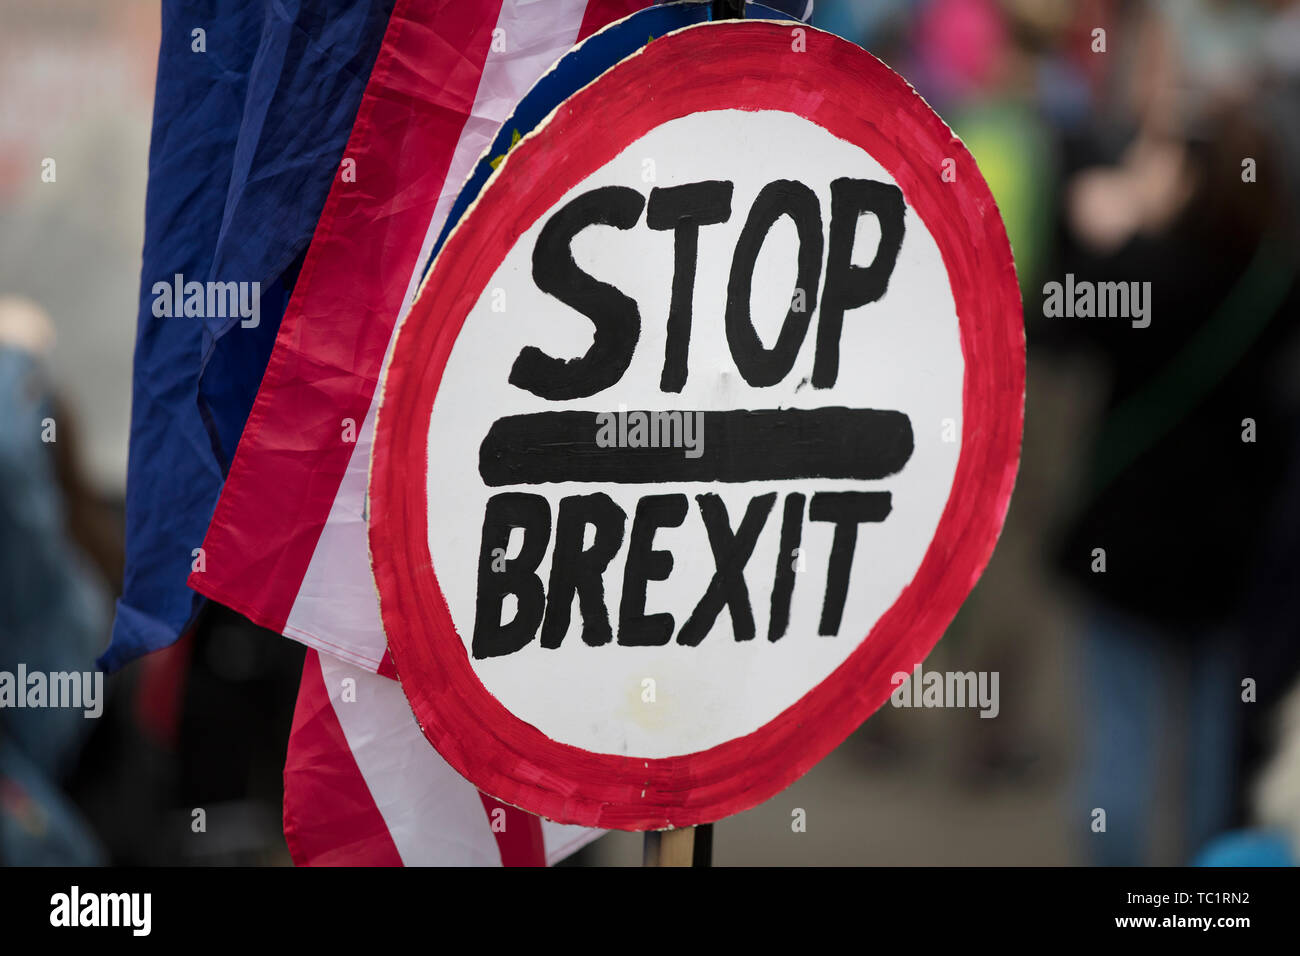 Stop brexit sign at a political protest in London Stock Photo